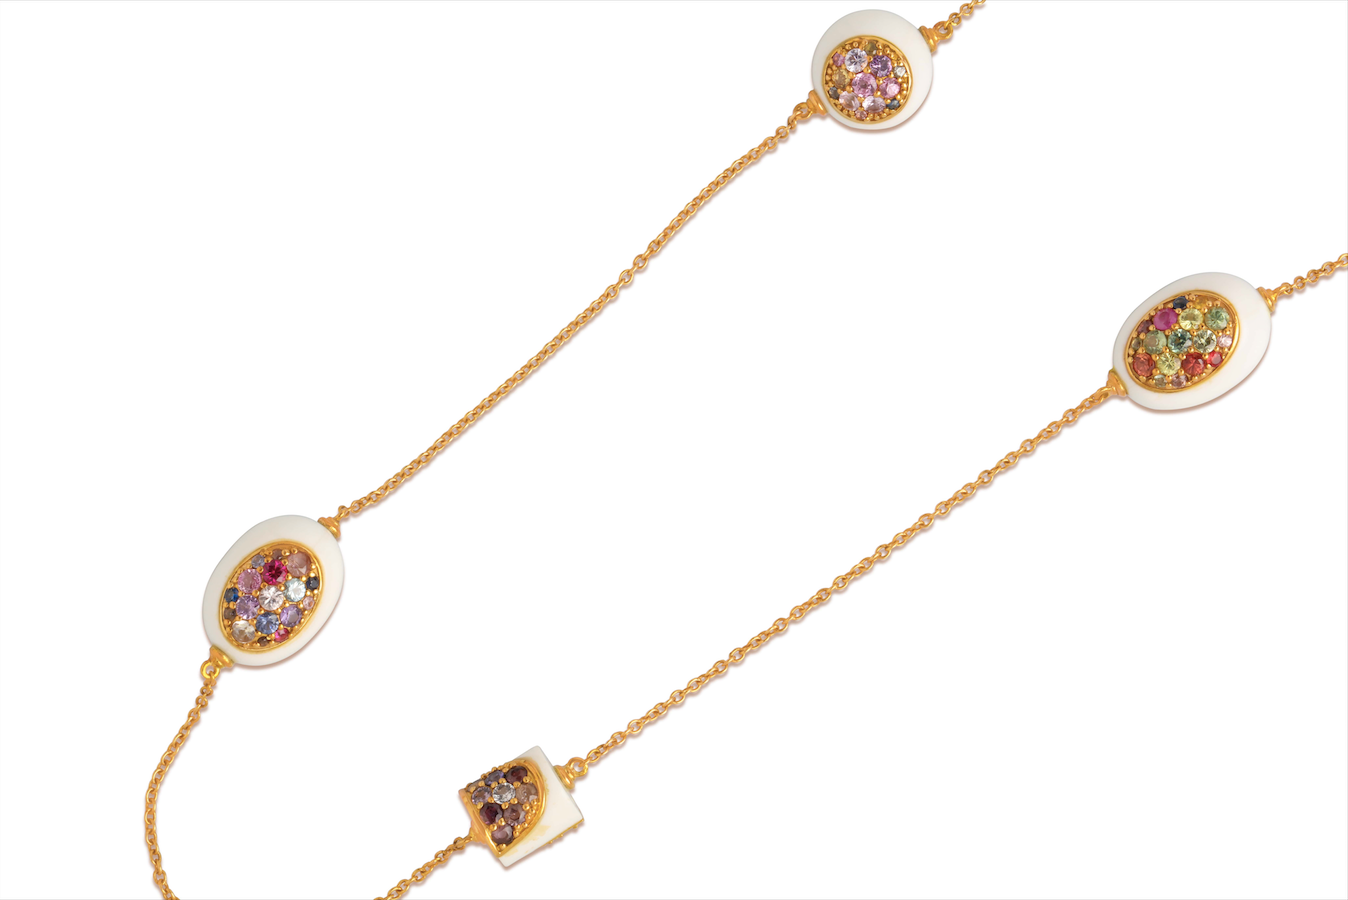 White Corian NECKLACE in 18K YELLOW GOLD WITH UNTREATED, UNHEATED, MULTICOLOR SAPPHIRES